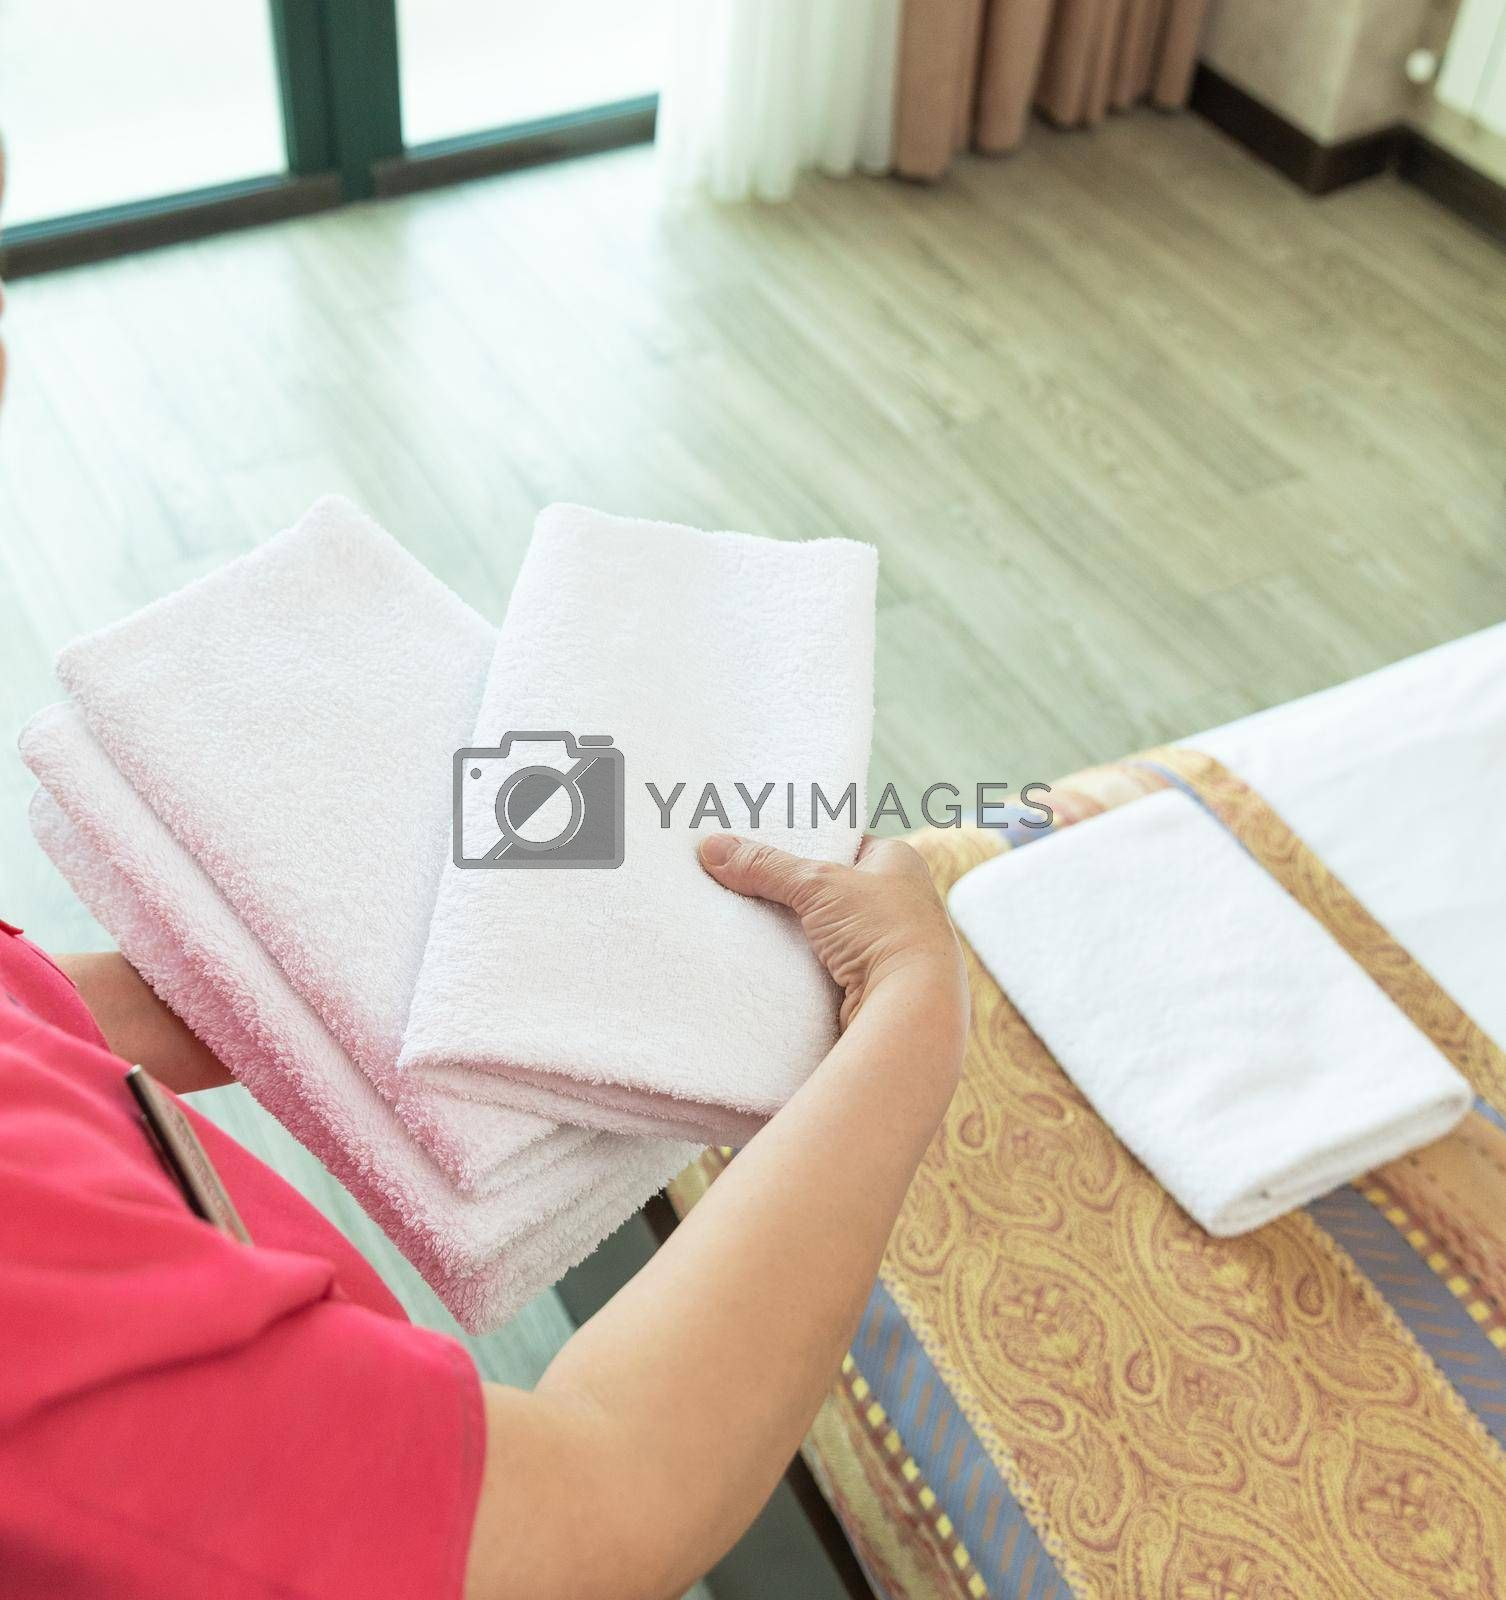 Hotel room service, woman puts a towel on the bed